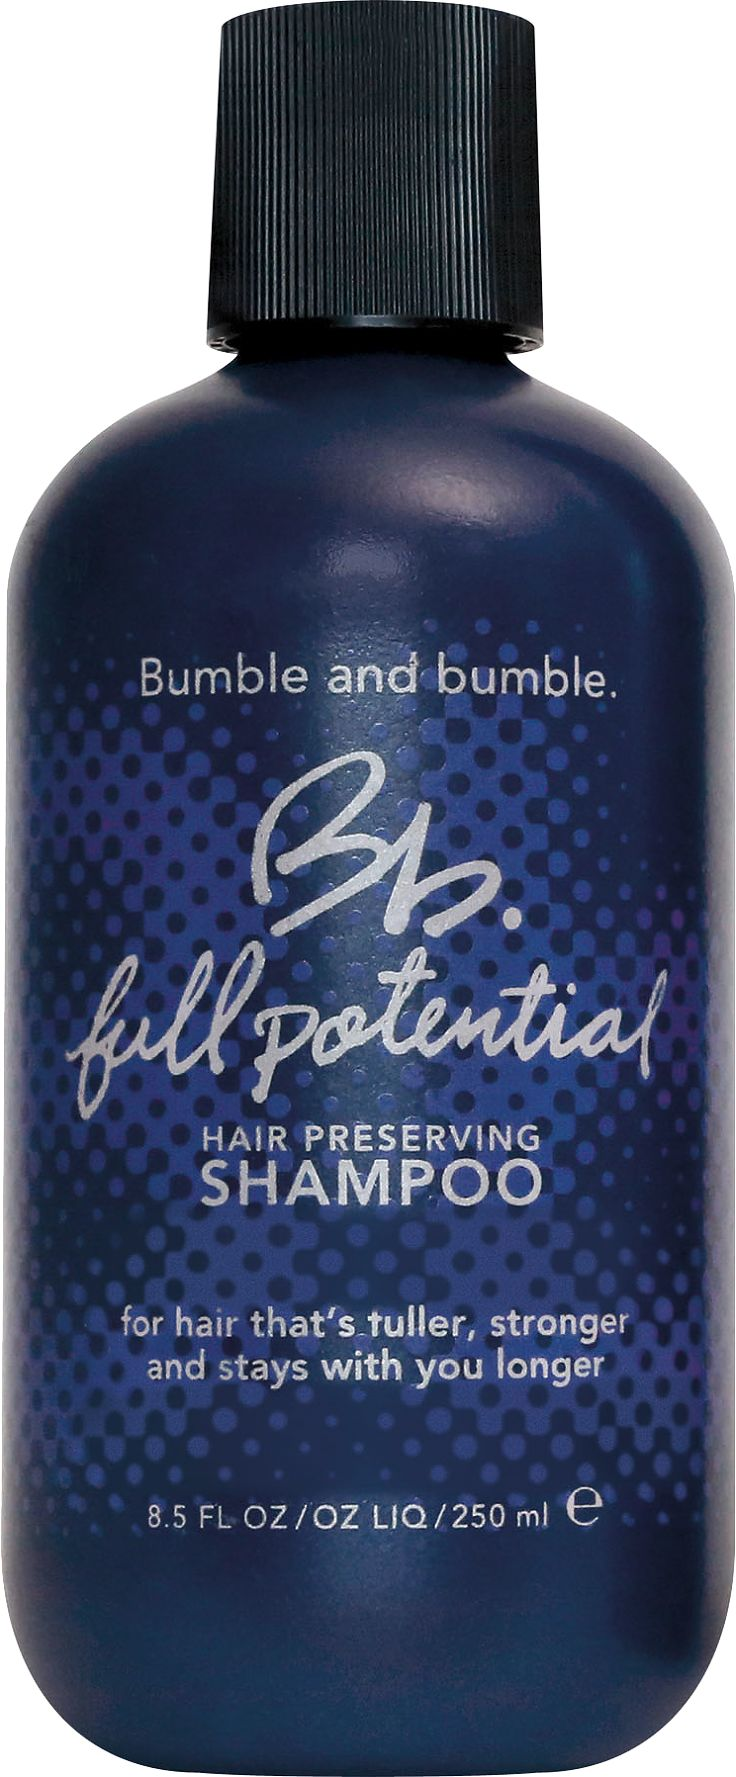 Bumble and bumble full potential Shampoo